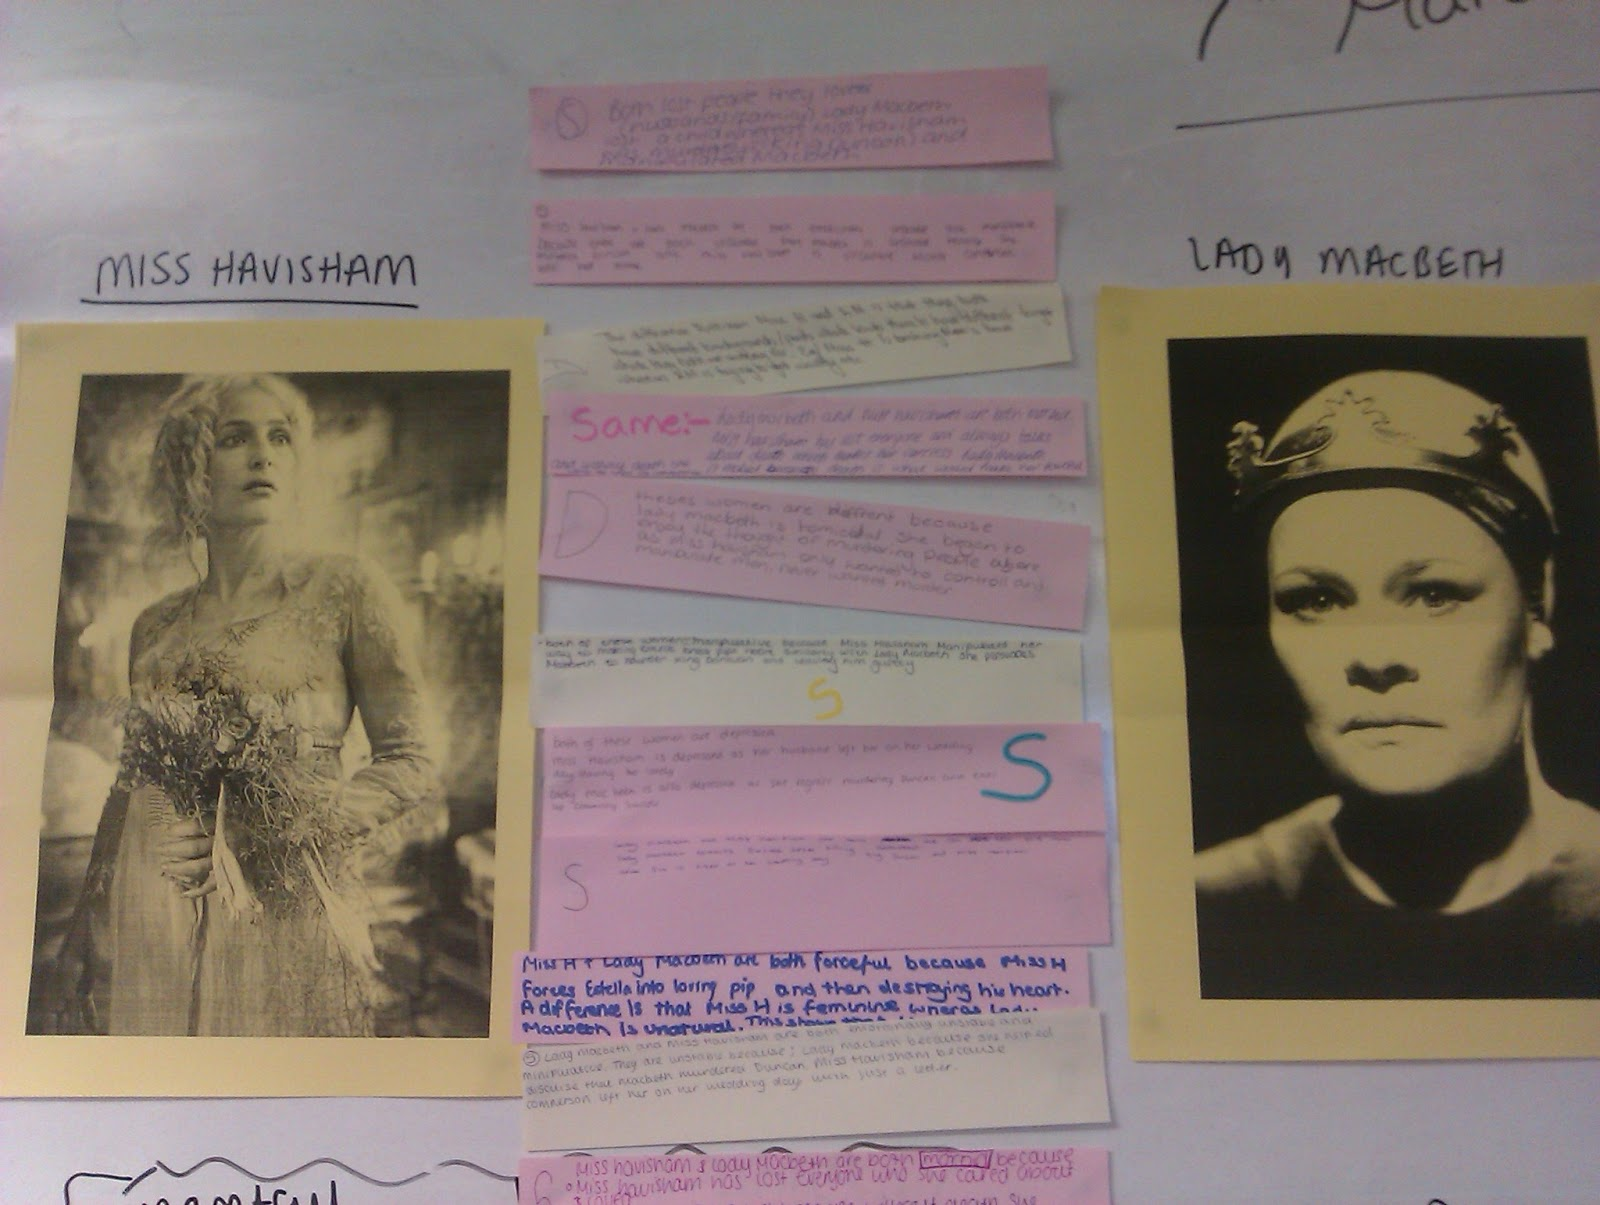 a psychological journey comparing miss havisham and lady macbeth pooled comparisons on the board